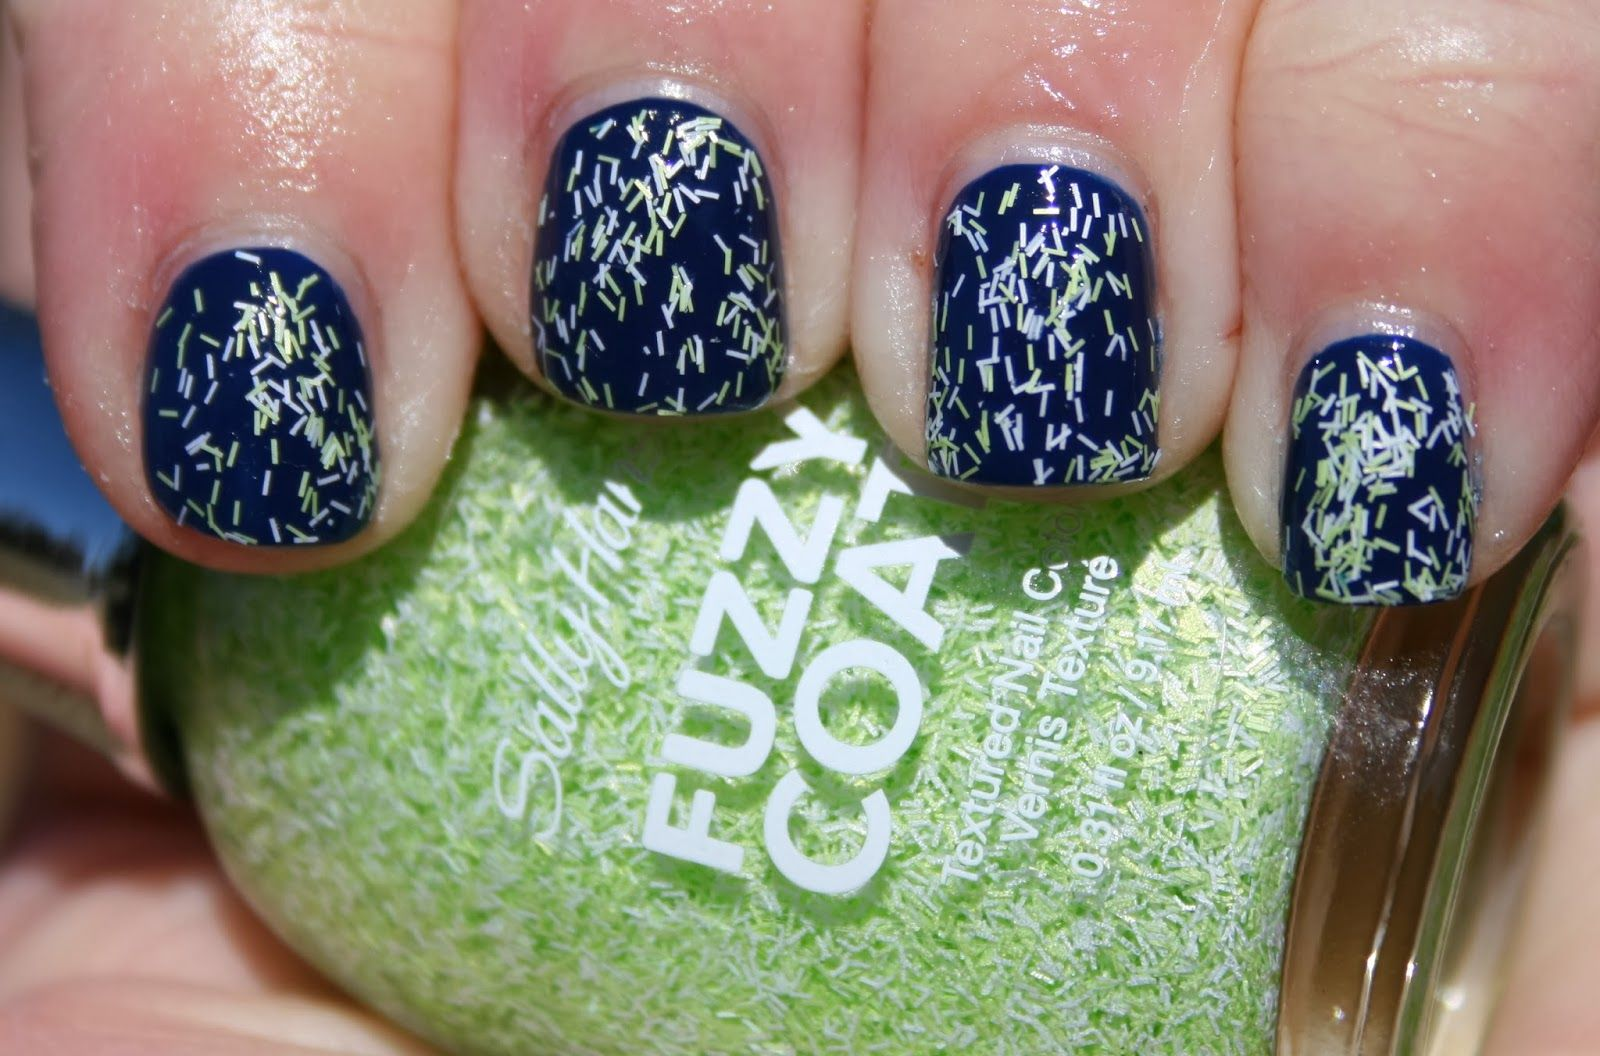 Sally Hansen Fuzzy Coat in Fuzzy Fantasy over SinfulColors Cold Leather